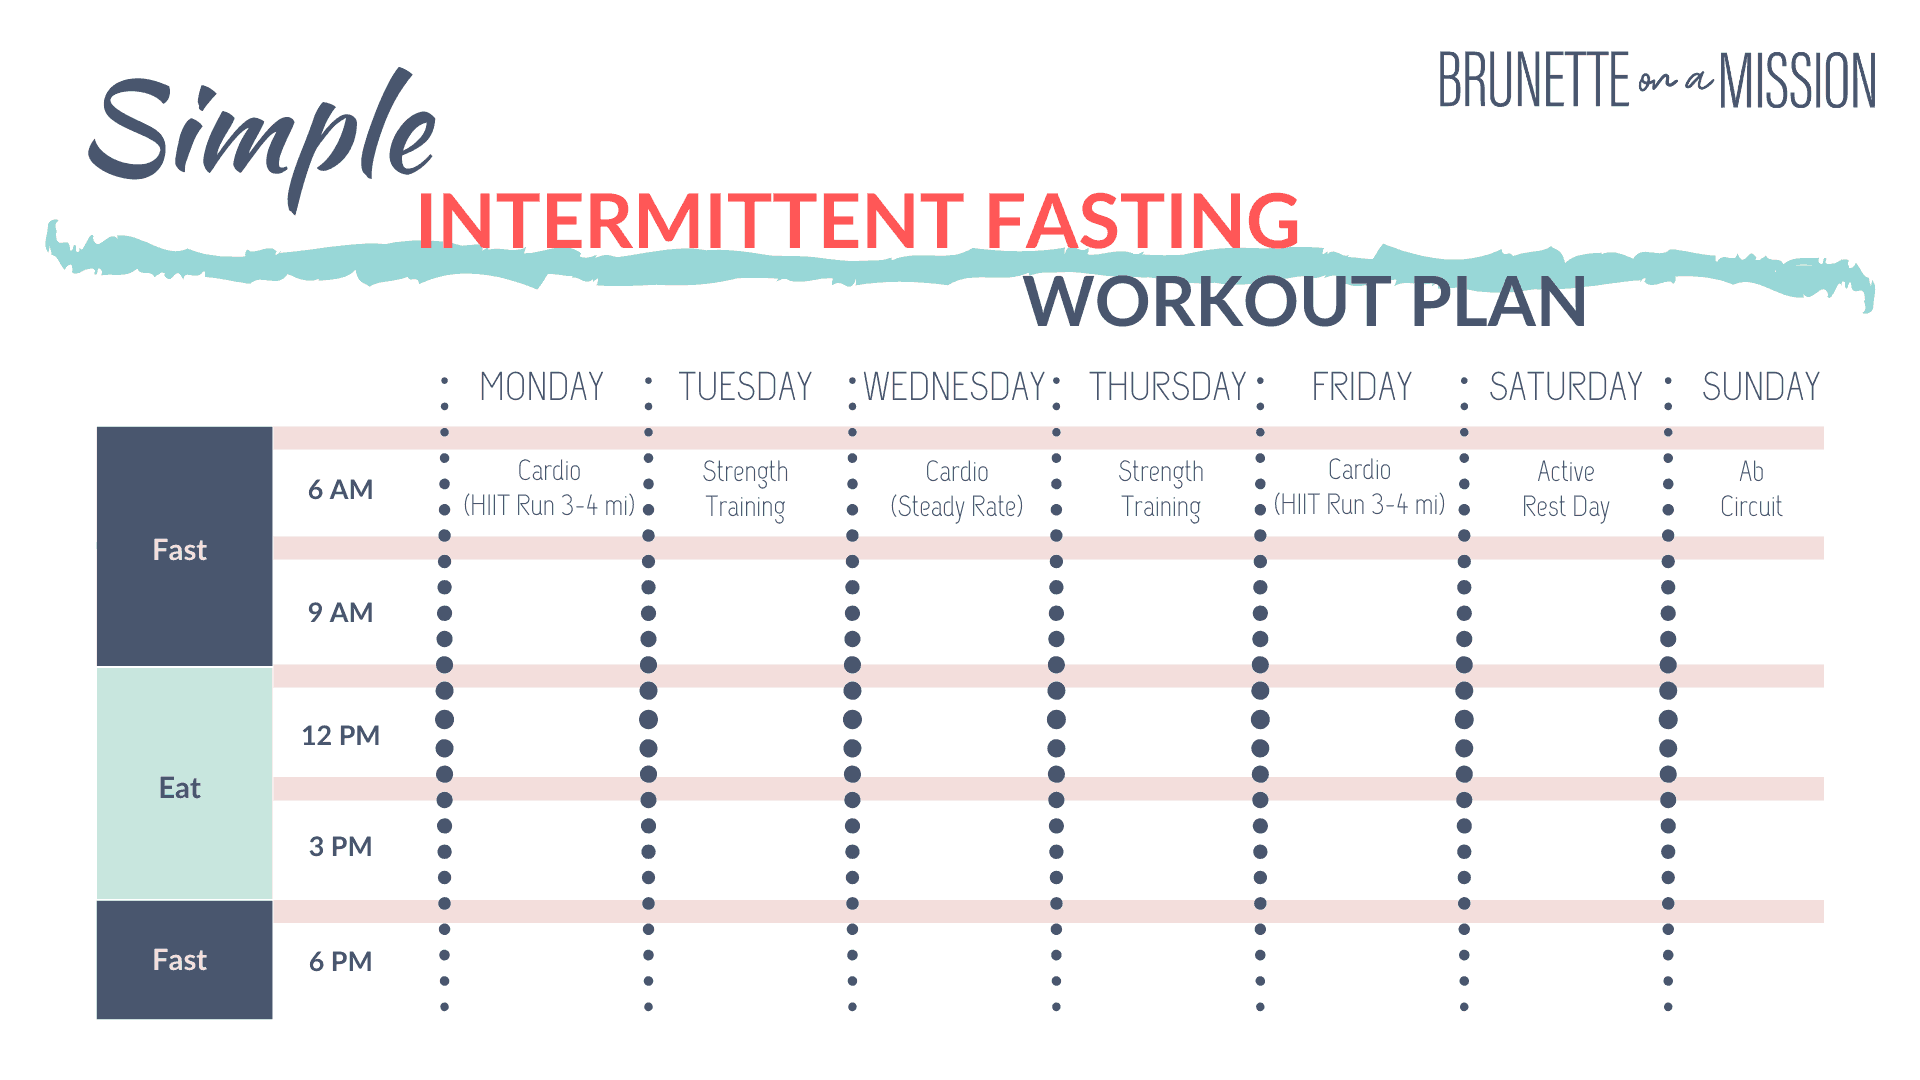 Simple Intermittent Fasting Workout Plan | Brunette on a ...